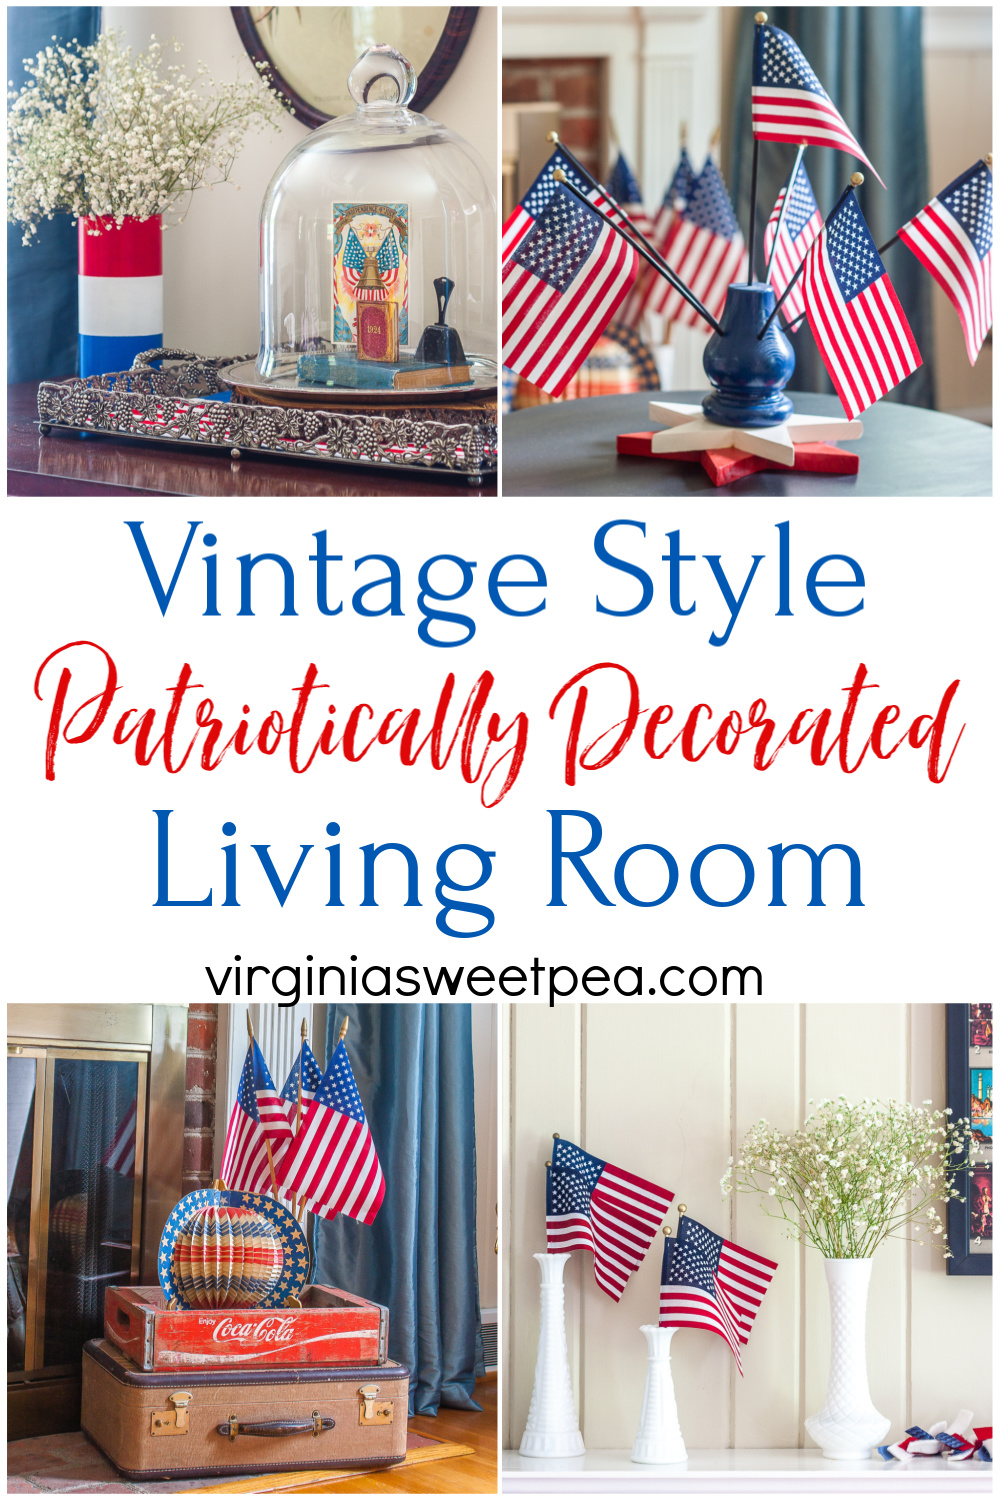 Vintage Style Patriotically Decorated Living Room - A living room is decorated patriotically with vintage.  #patrioticdecor #patrioticvignette #patrioticdecorating #4thofjulydecor #vintagehomedecor #vintagestyle